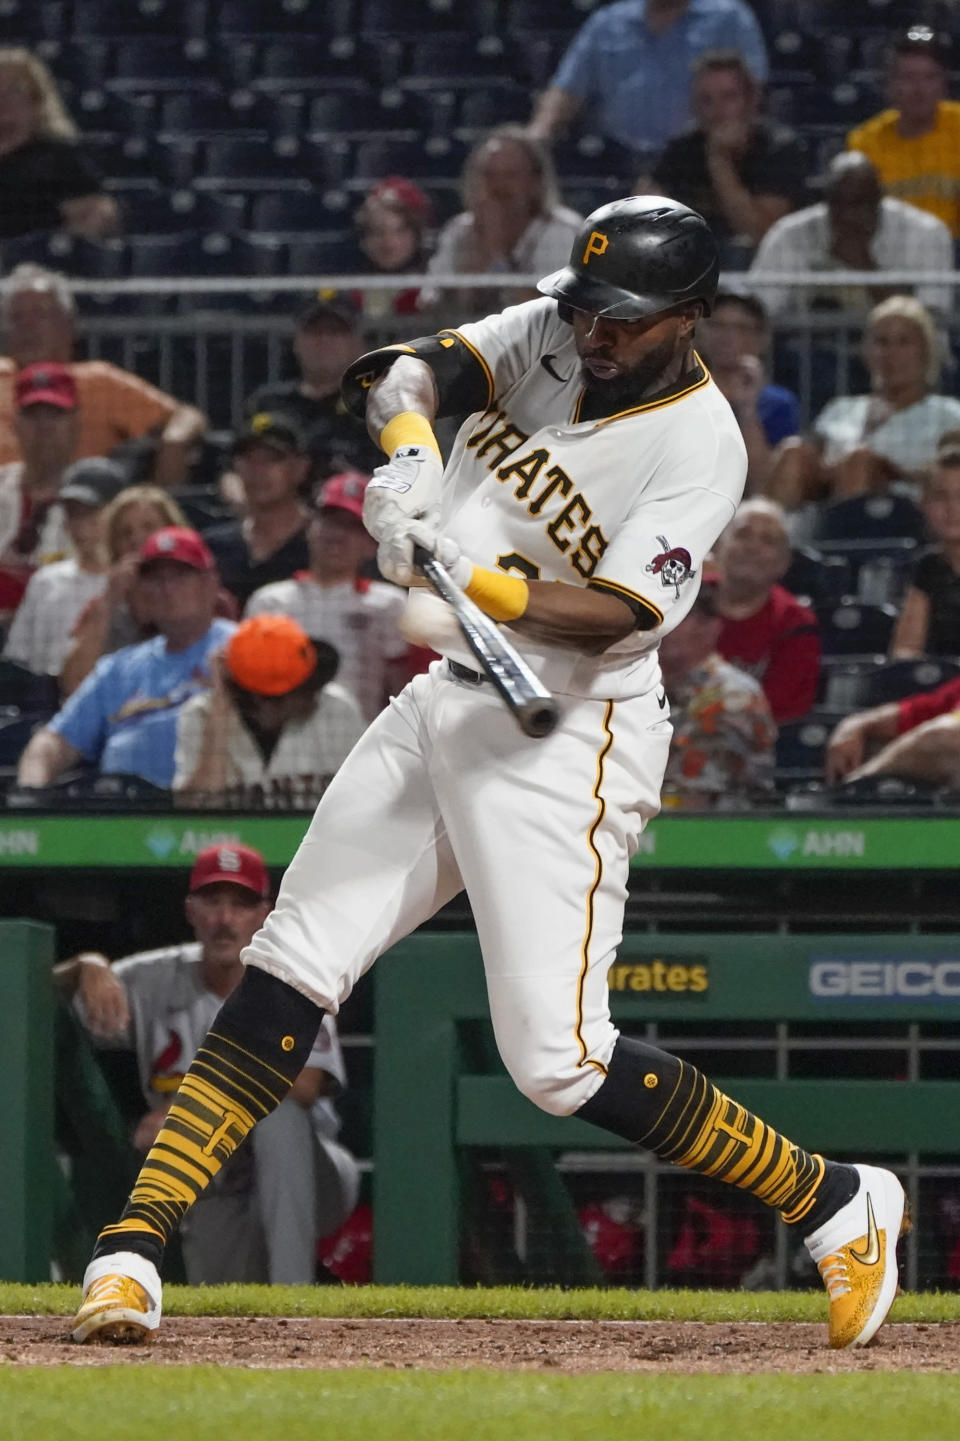 Pittsburgh Pirates' Gregory Polanco drives in two runs with a double in the seventh inning of a baseball game against the St. Louis Cardinals, Thursday, Aug. 26, 2021, in Pittsburgh. (AP Photo/Keith Srakocic)